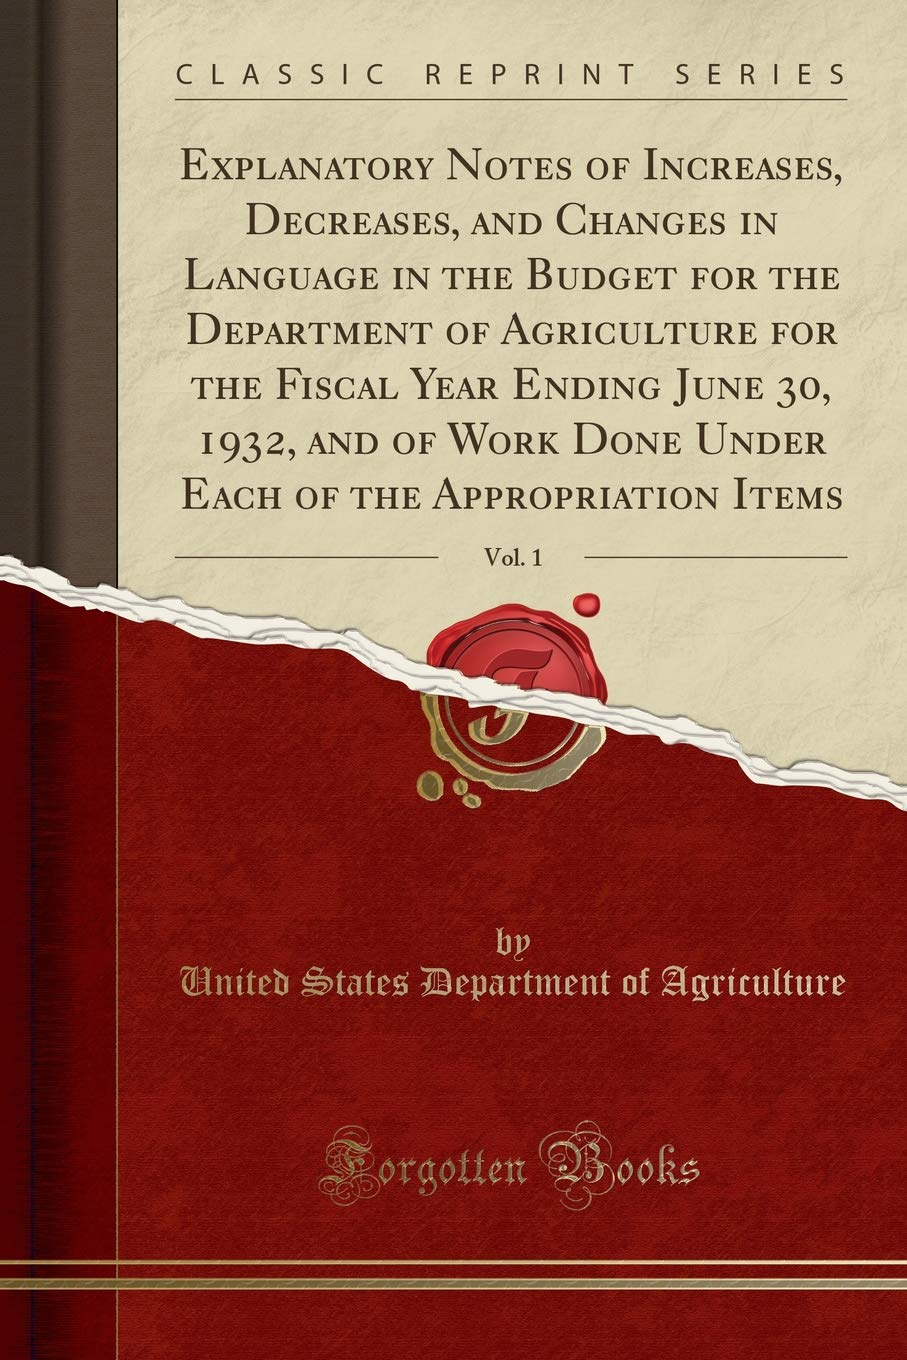 Explanatory Notes of Increases, Decreases, and Changes in Language in the Budget for the Department of Agriculture for the Fiscal Year Ending June 30, ... Appropriation Items, Vol. 1 (Classic Reprint)